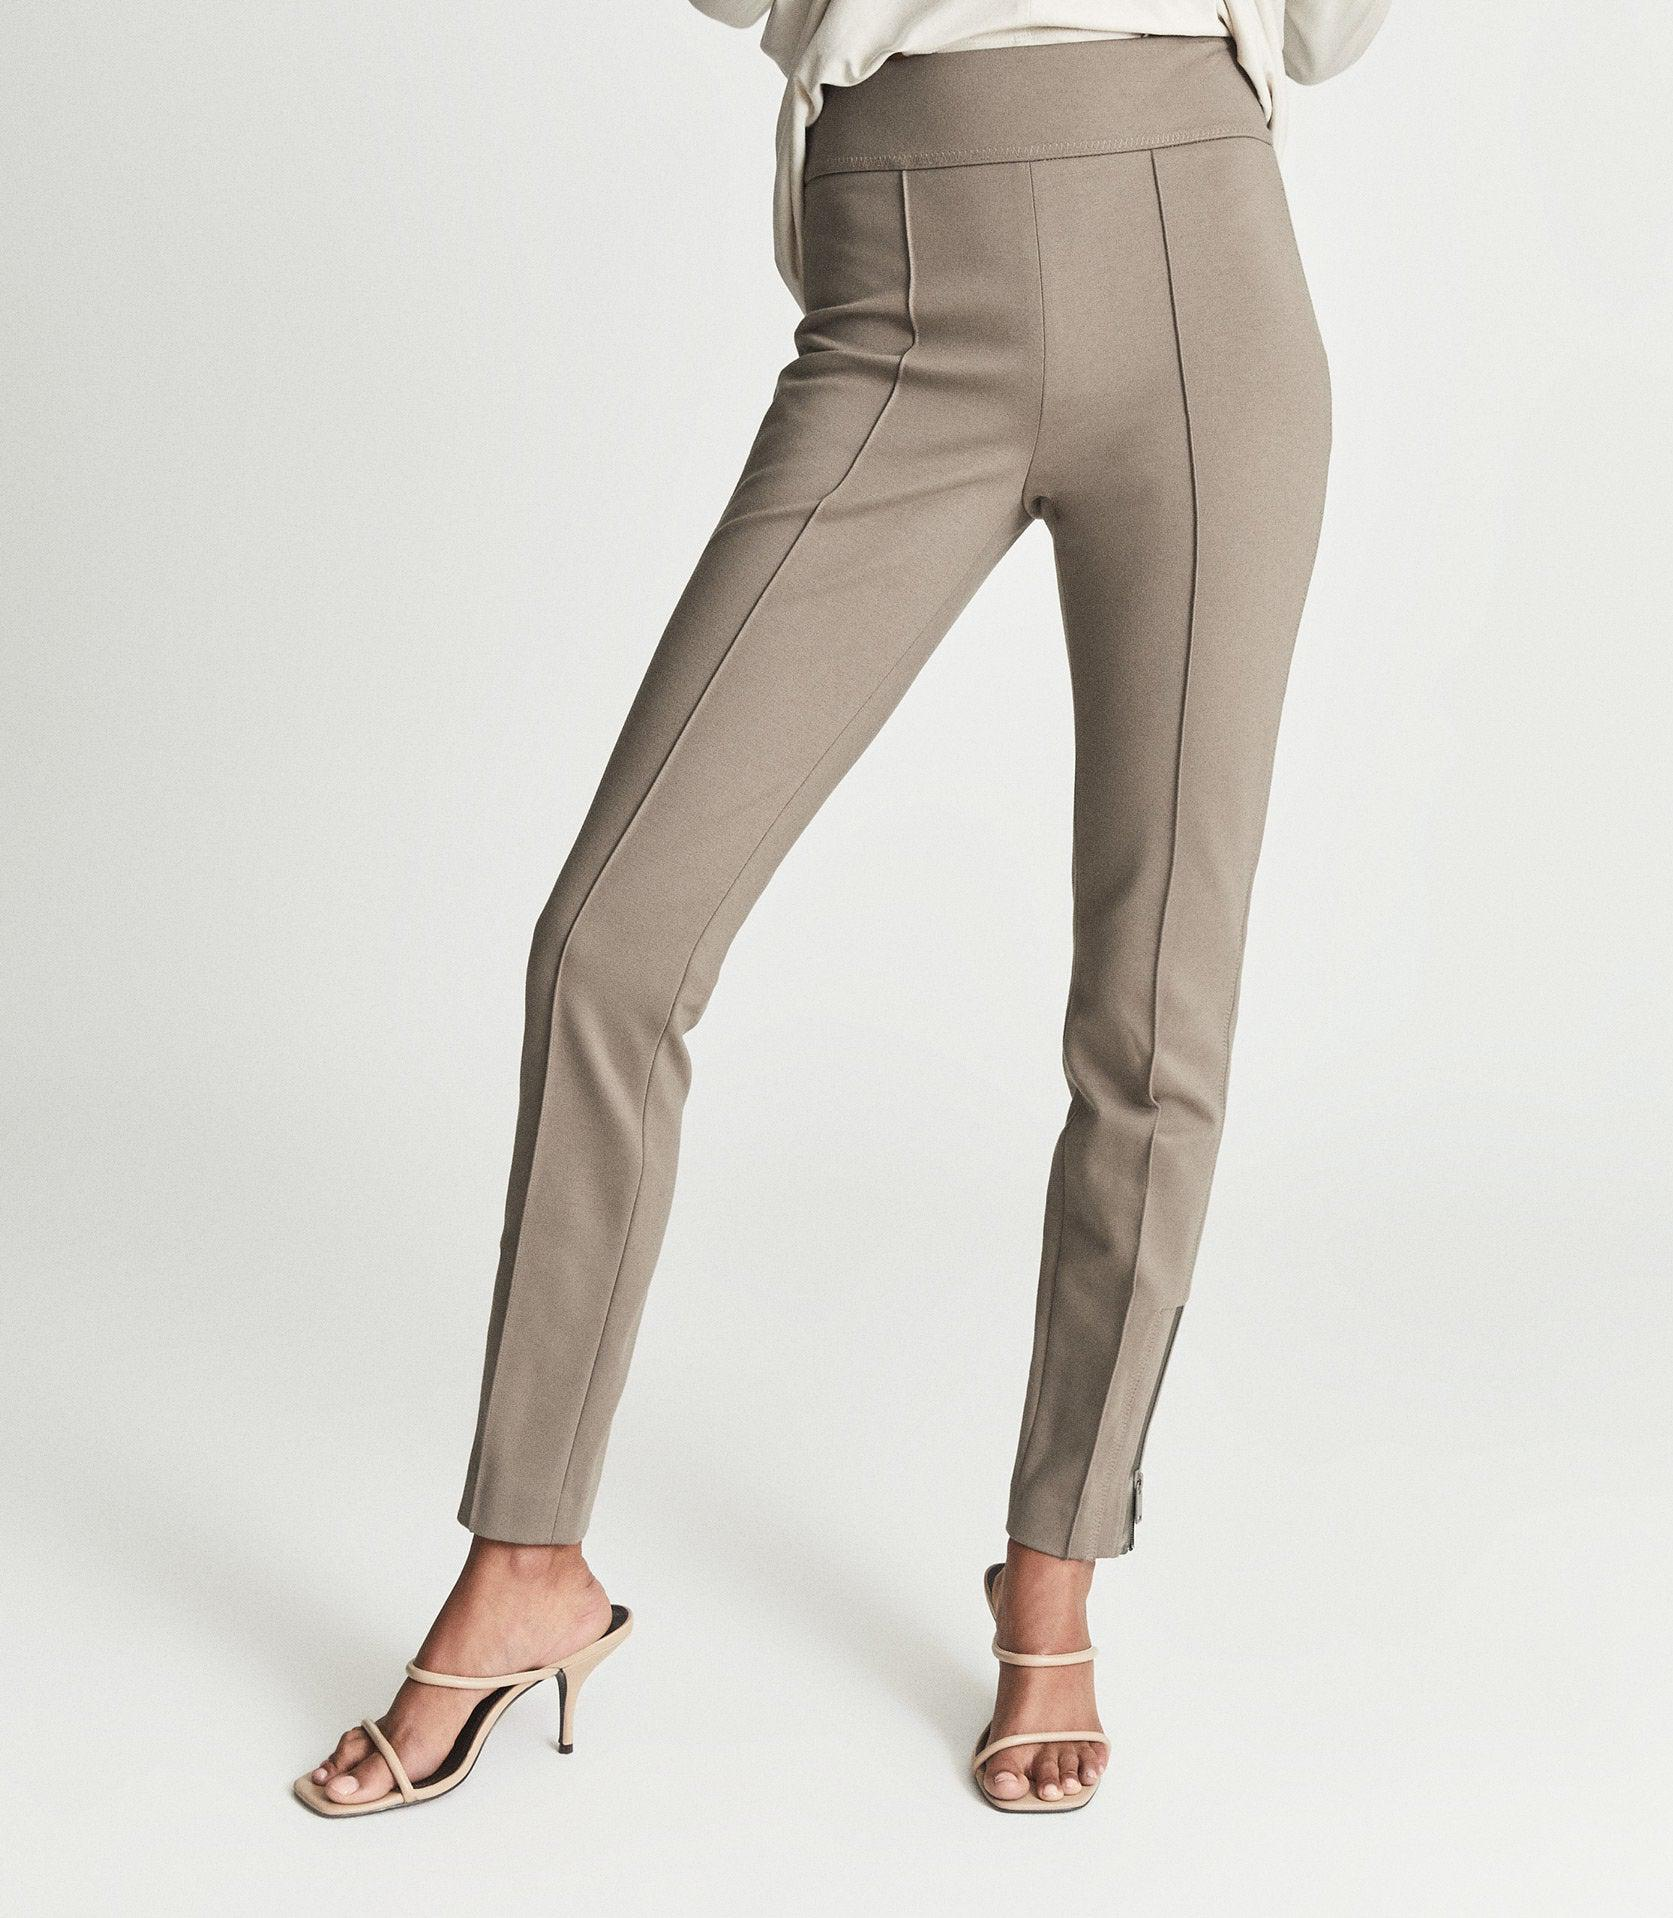 ISLA - PONTE TROUSERS WITH ZIP DETAIL 1